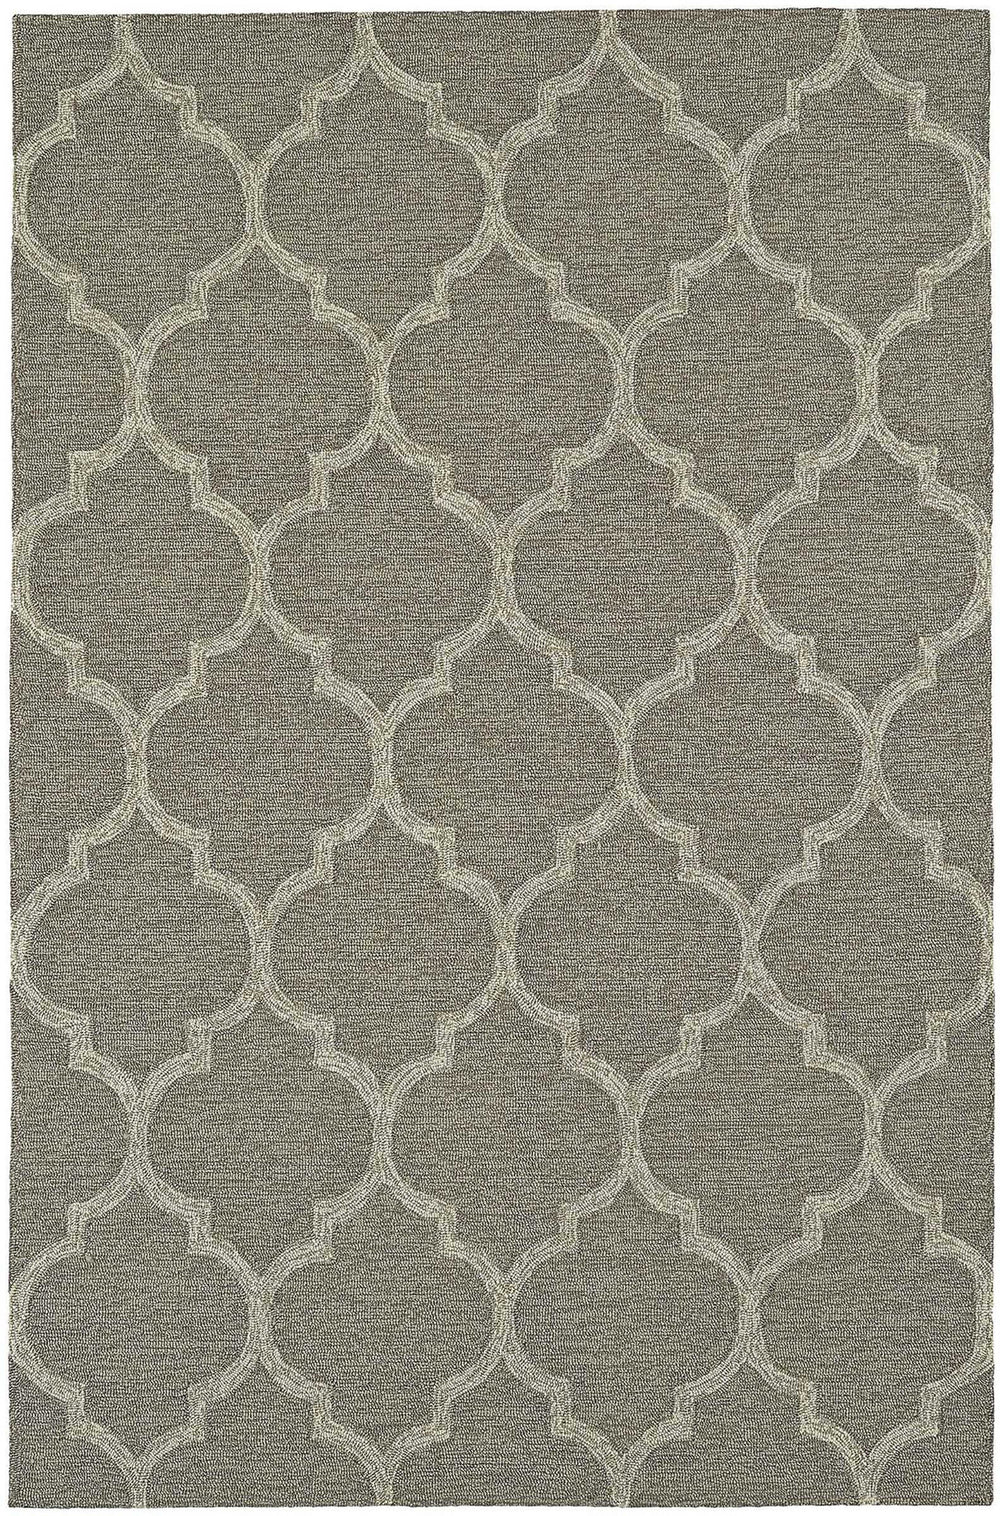 Dalyn Cabana CN12 Area Rug